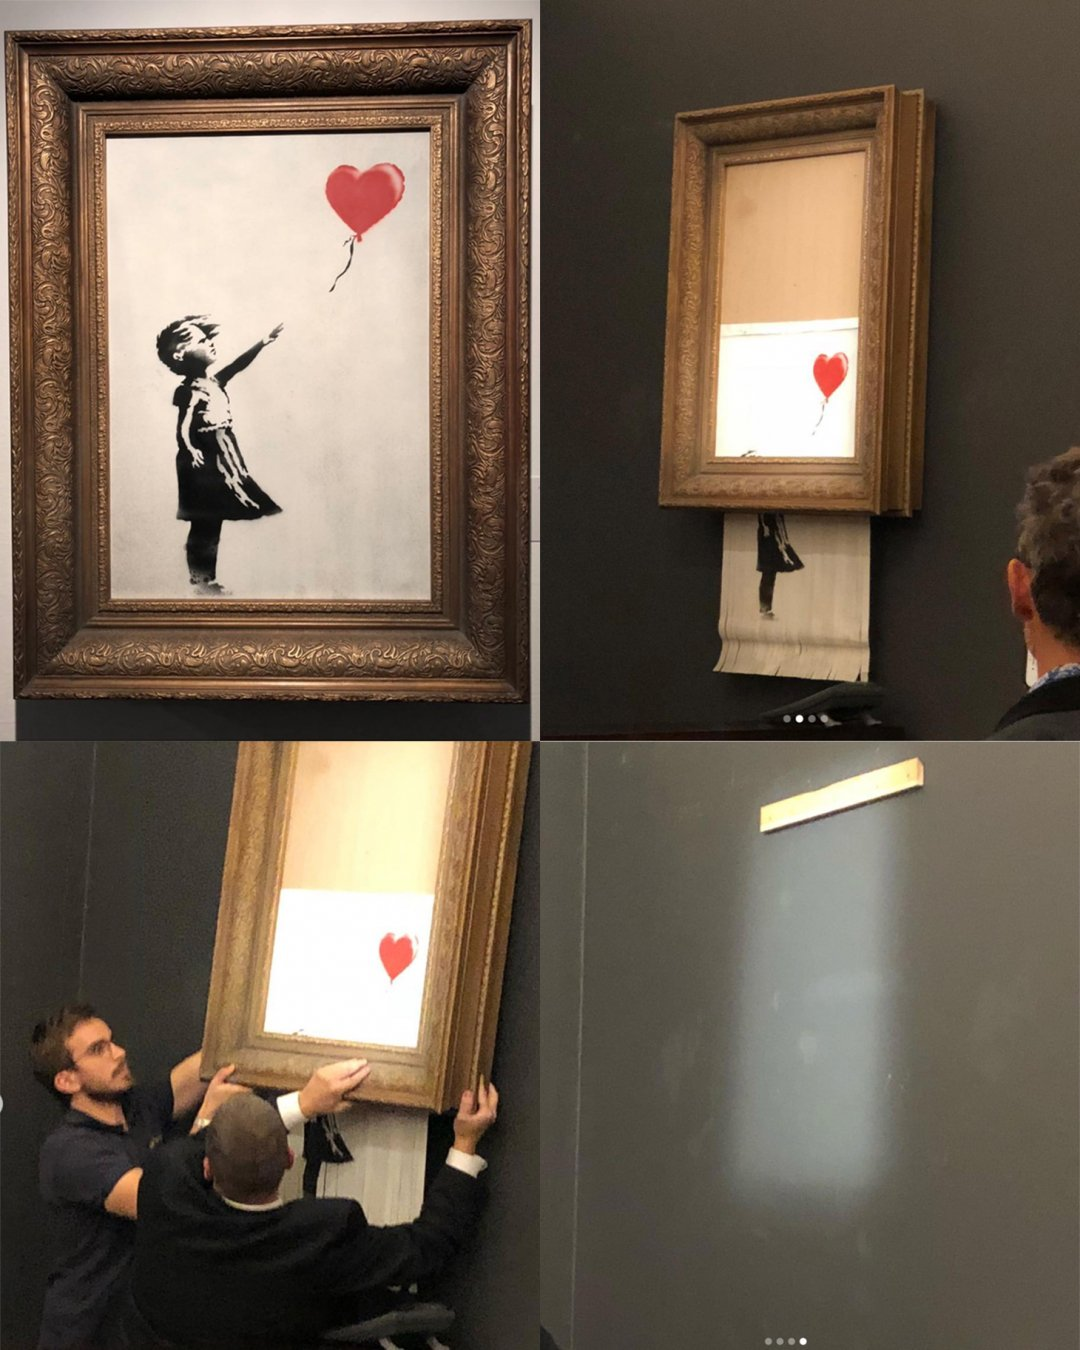 Comment Banksy a Trollé sa vente à 1.3 Million de Dollars 2